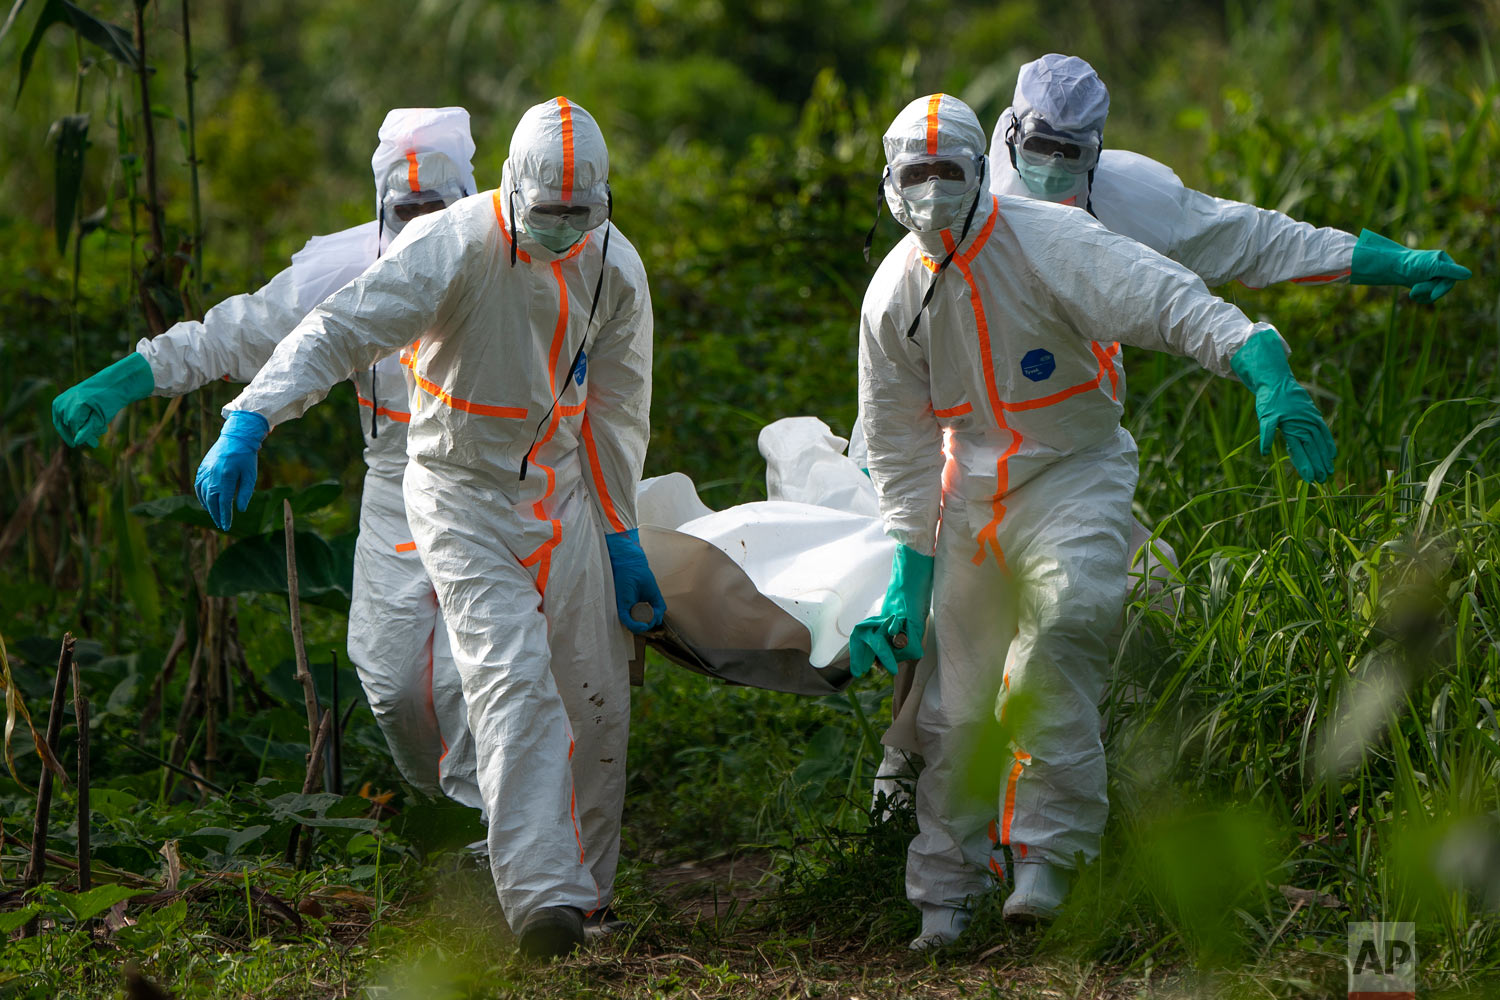 Burial workers dressed in protective gear carry the remains of Mussa Kathembo, an Islamic scholar who had prayed over those who were sick, and died of Ebola, in Beni, Congo, July 14, 2019. (AP Photo/Jerome Delay)